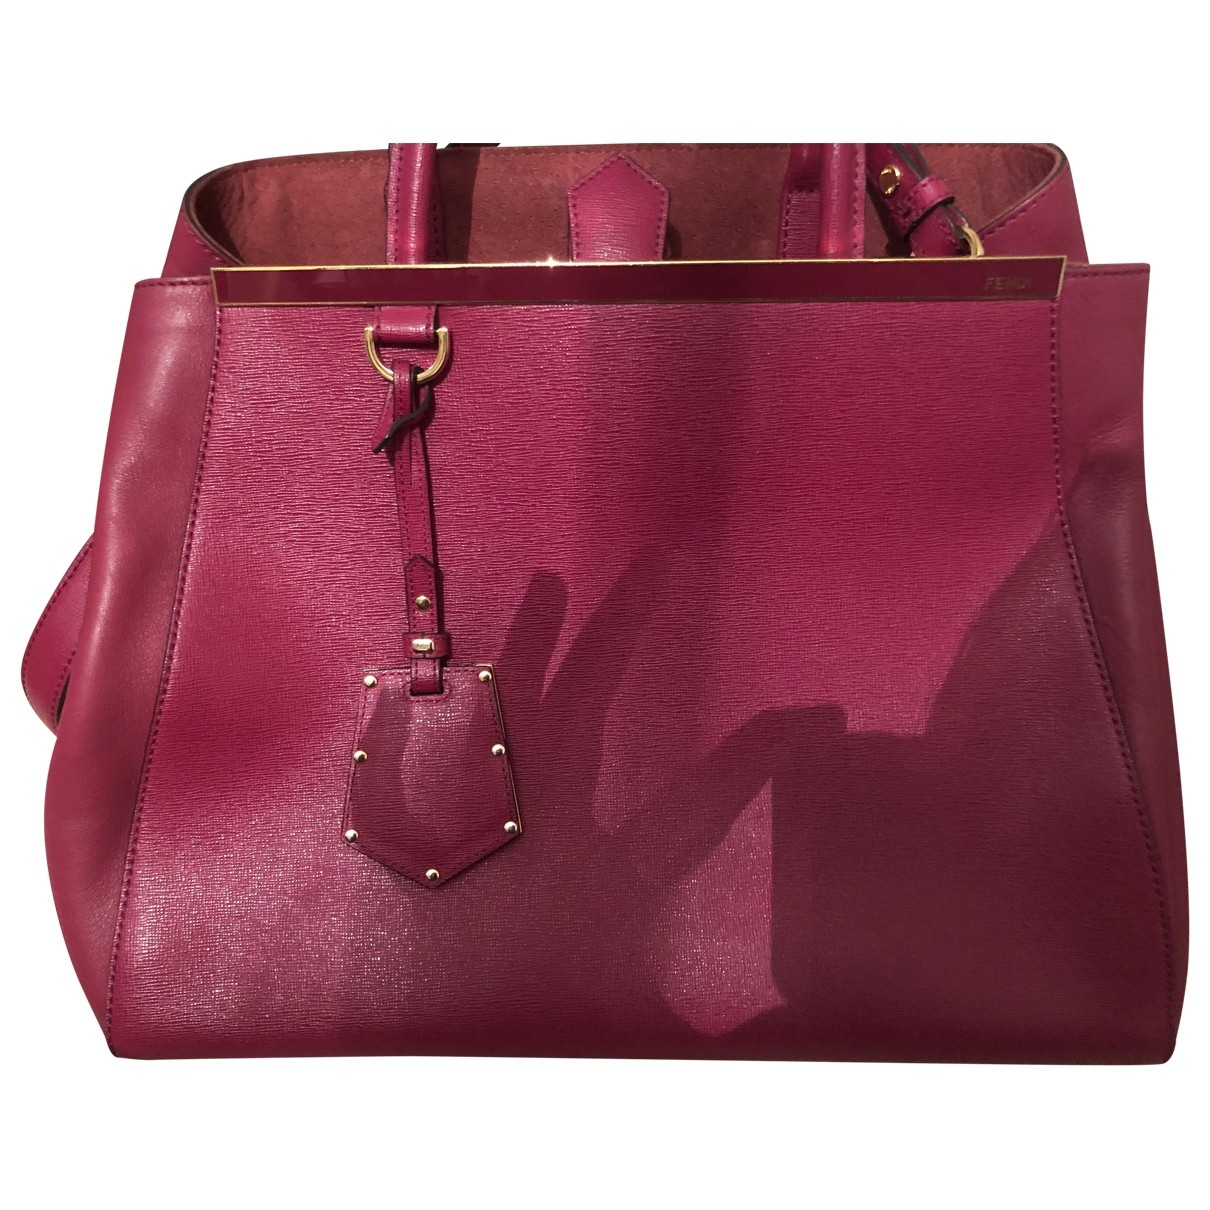 Fendi 2Jours Burgundy Leather handbag for Women \N